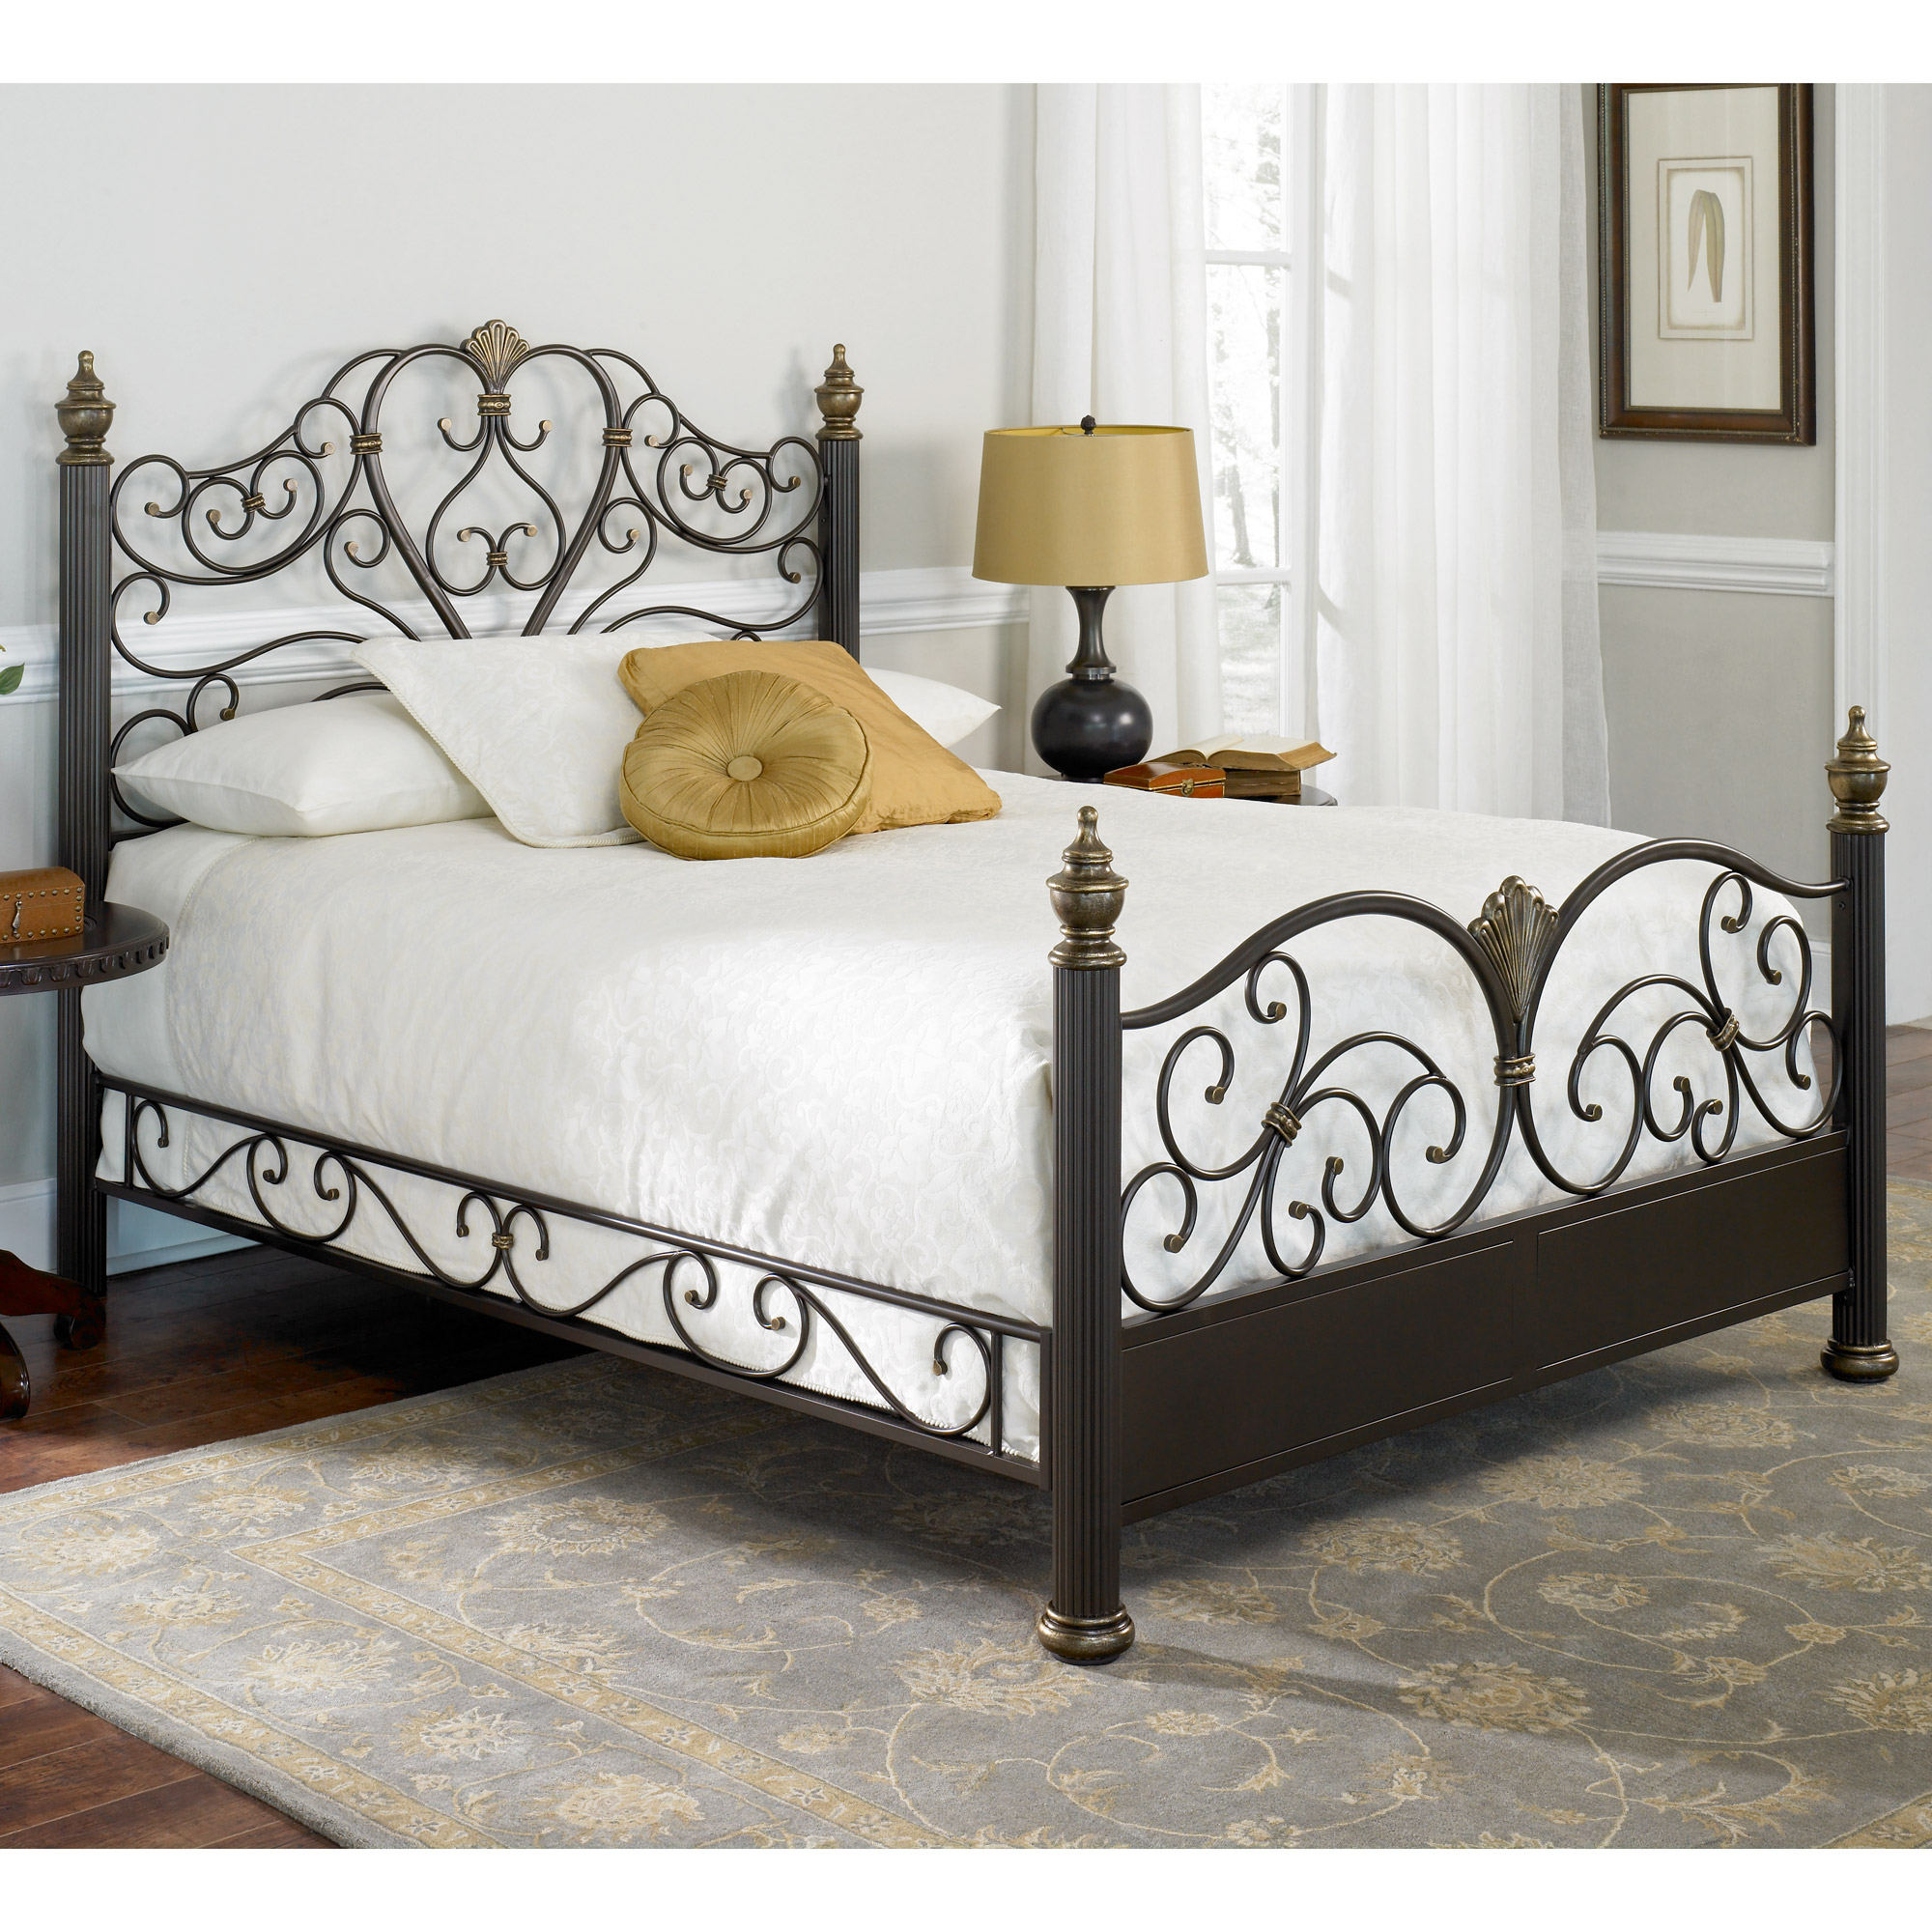 Antique Full Size Wrought Iron Bed